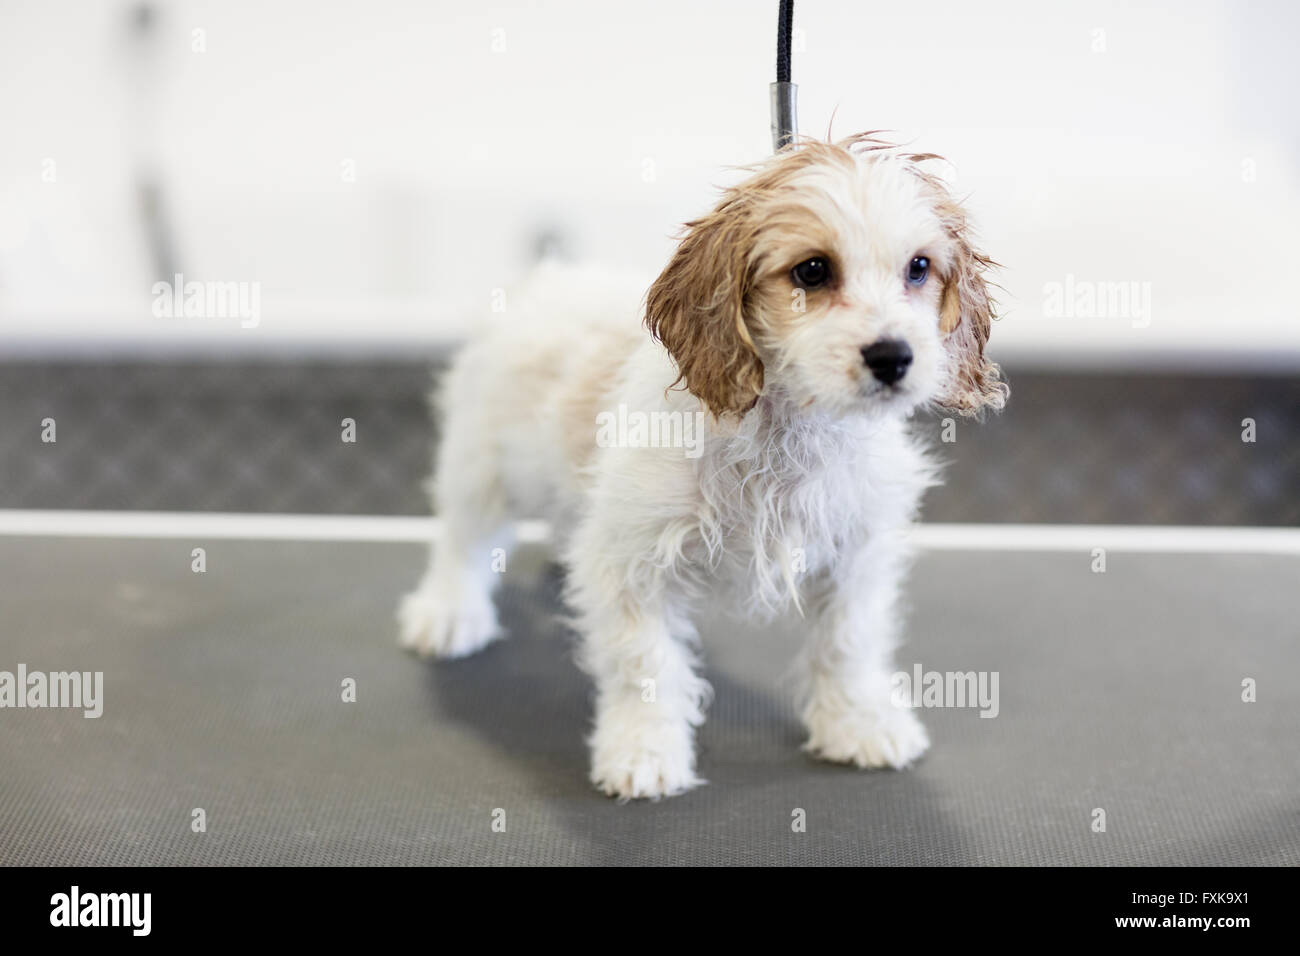 Dog standing on hydrotherapy treadmill - Stock Image